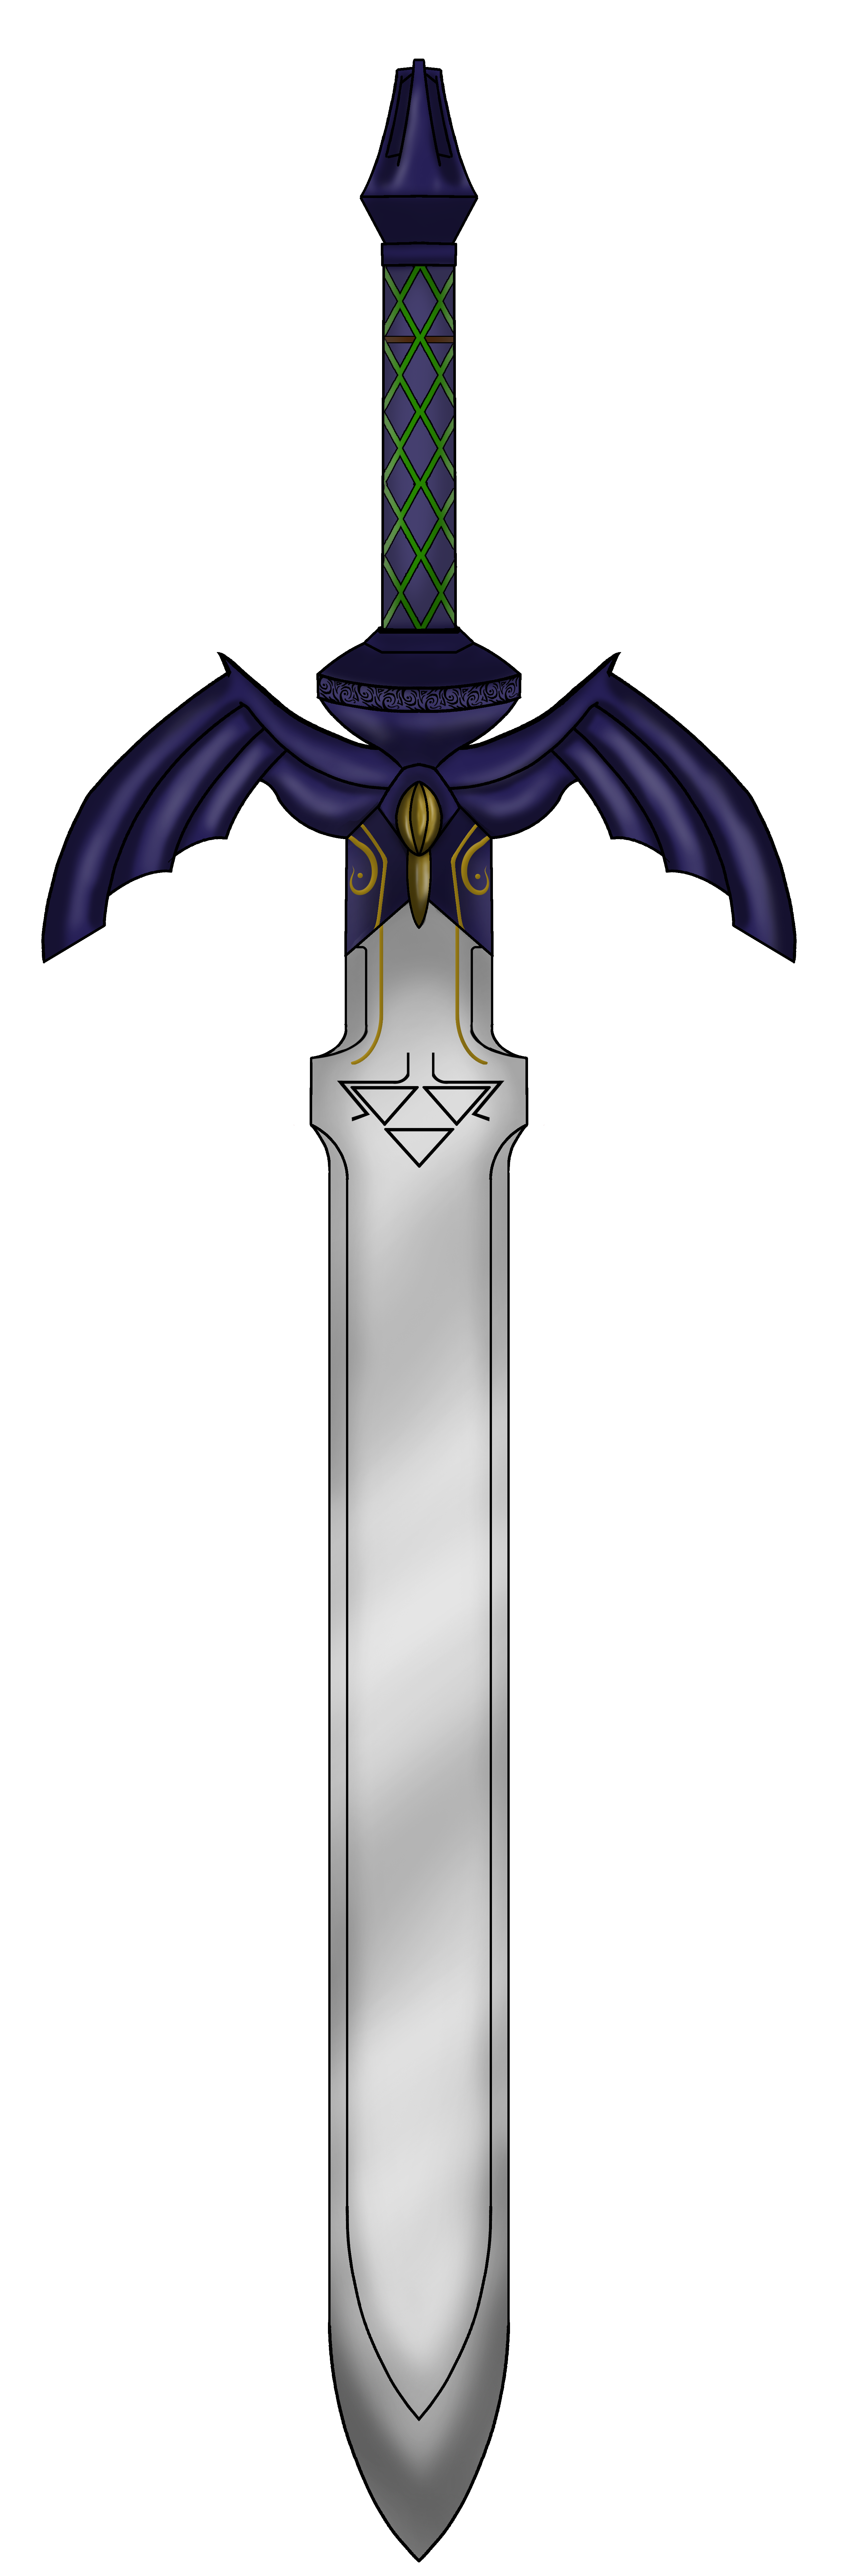 The Master Sword